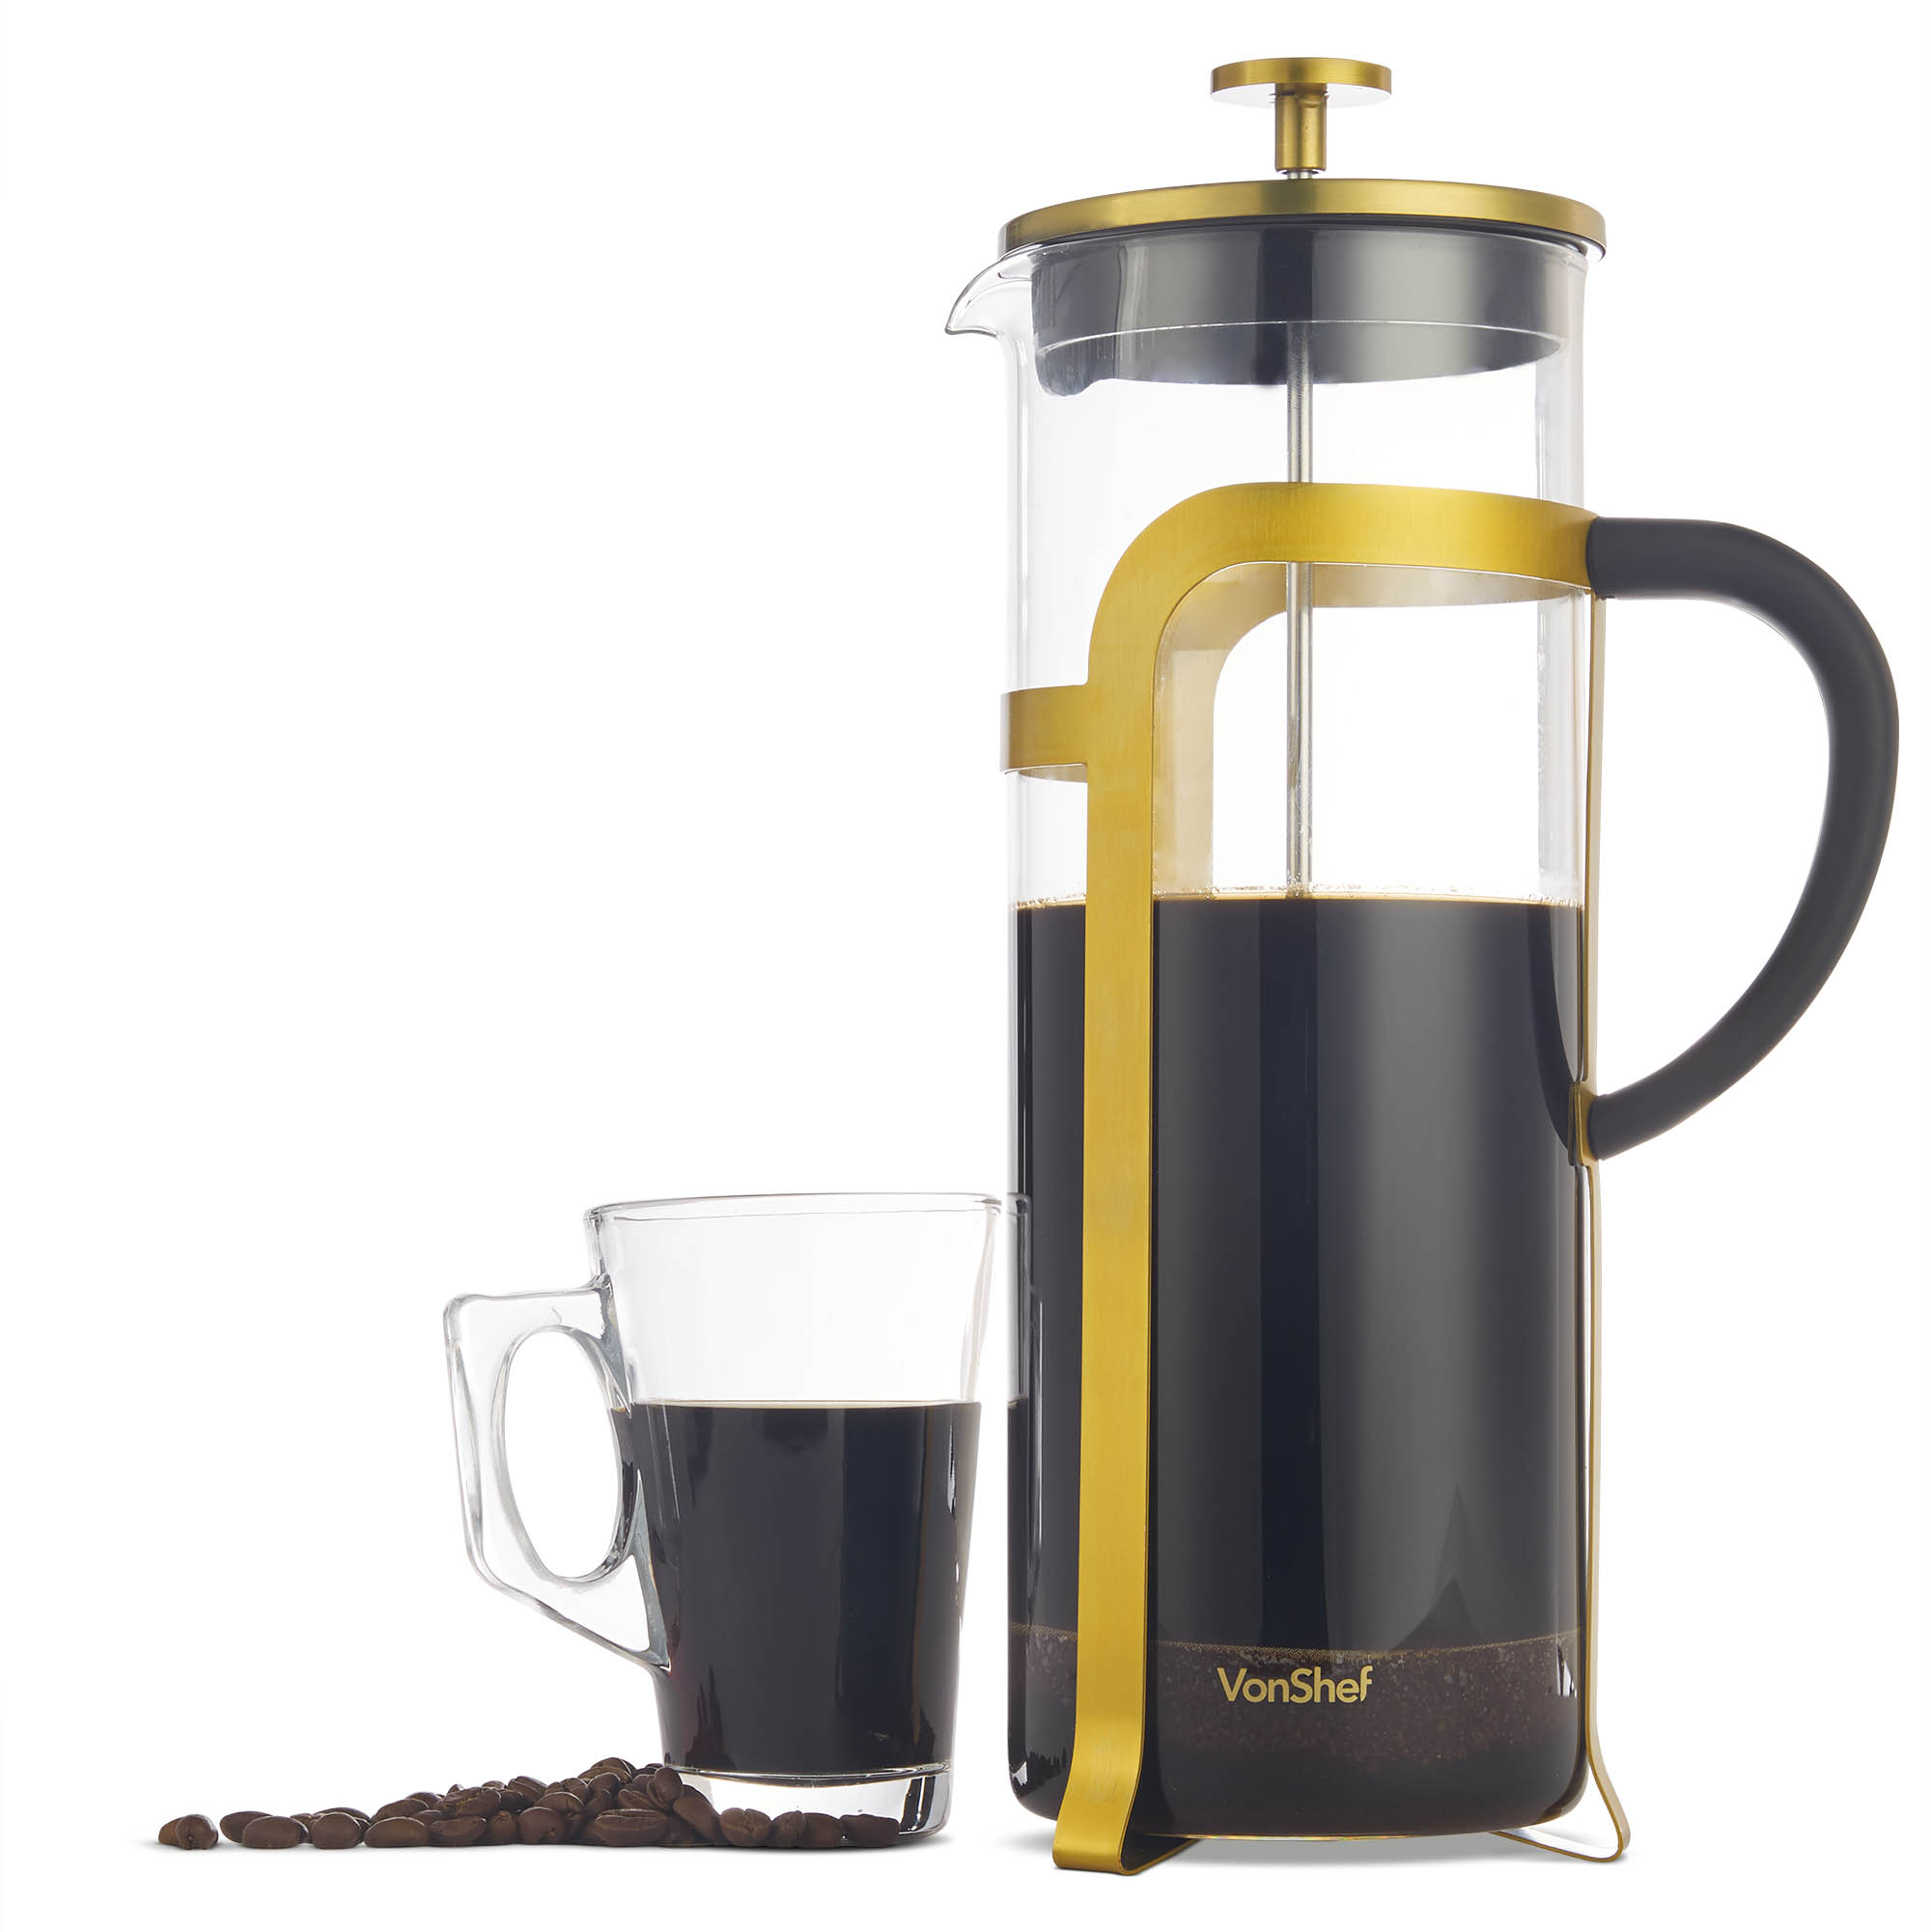 Details About Vonshef Glass Cafetiere Coffee Maker 12 Cup 15l Chrome Finish French Press